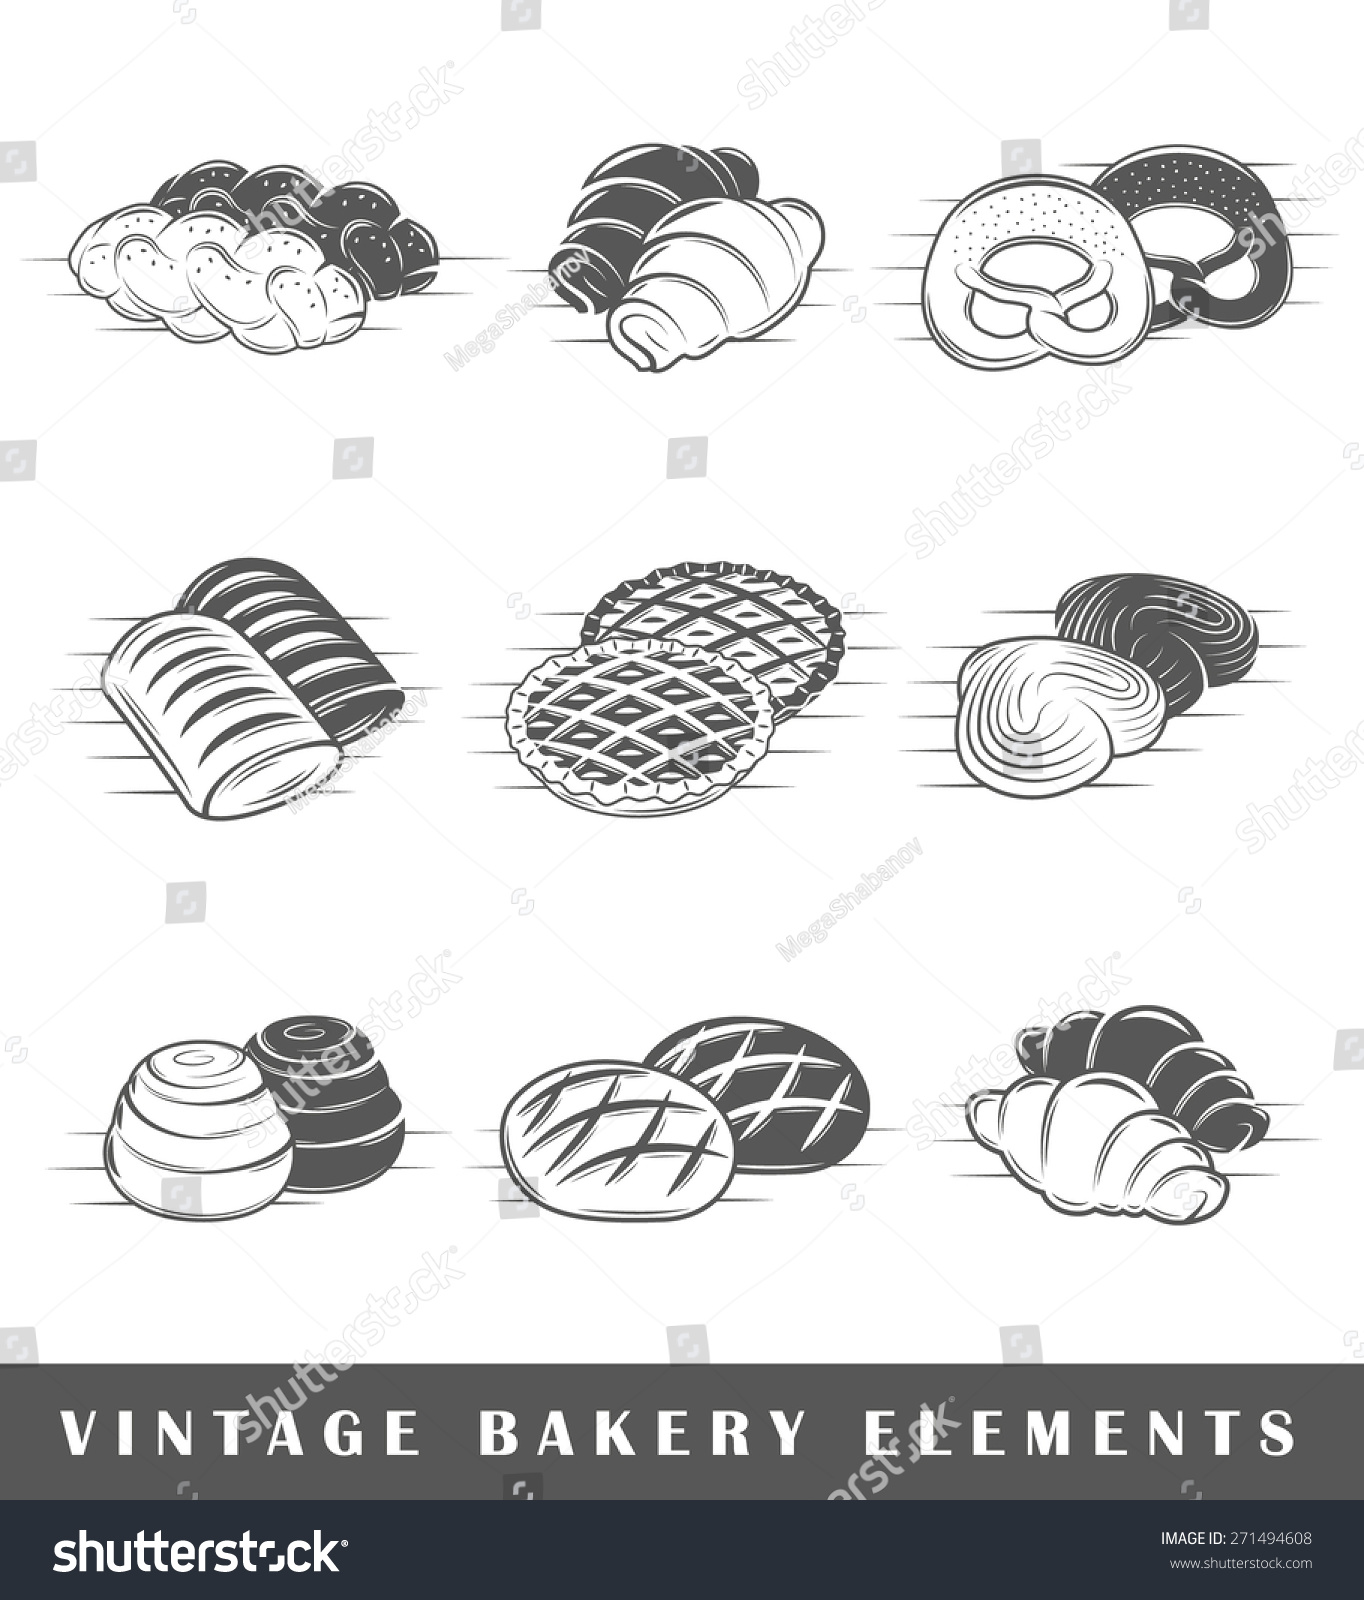 Set elements bakery elements bakery isolated stock vector set of elements of the bakery elements of bakery isolated on white symbols for biocorpaavc Gallery